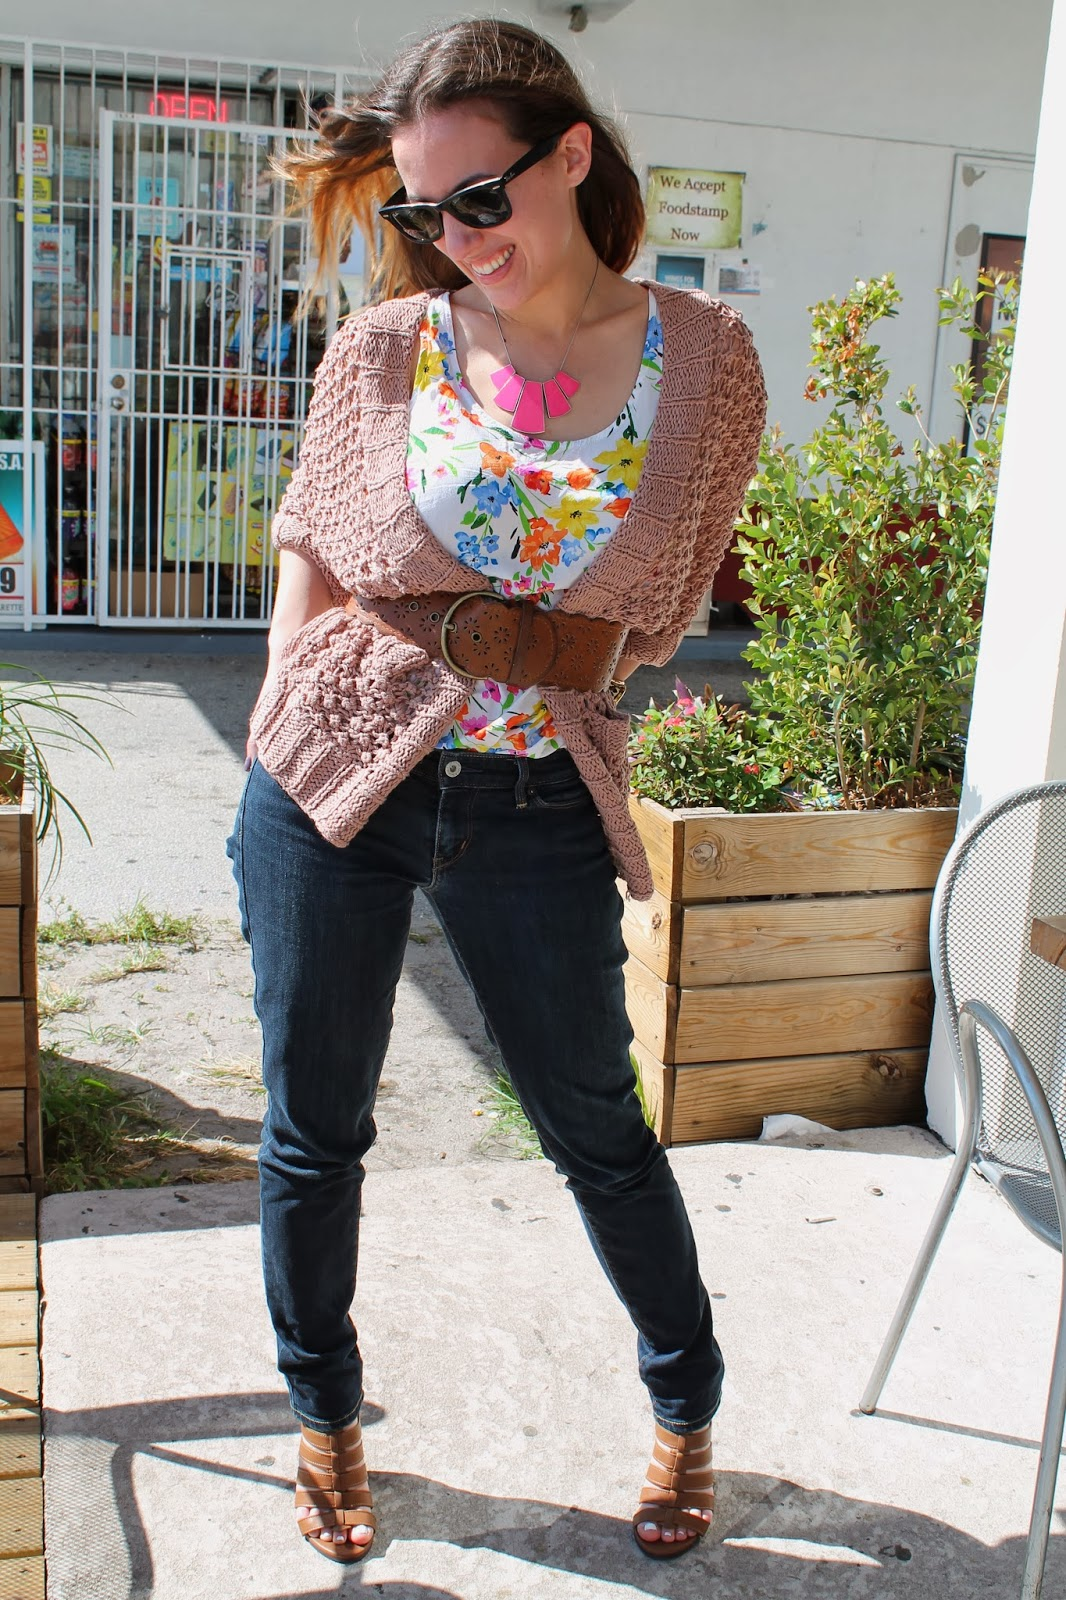 prep, boho, miami, fashion, style, ootd, what i wore, look book, floral, gladiator heels, knits, blush, street style